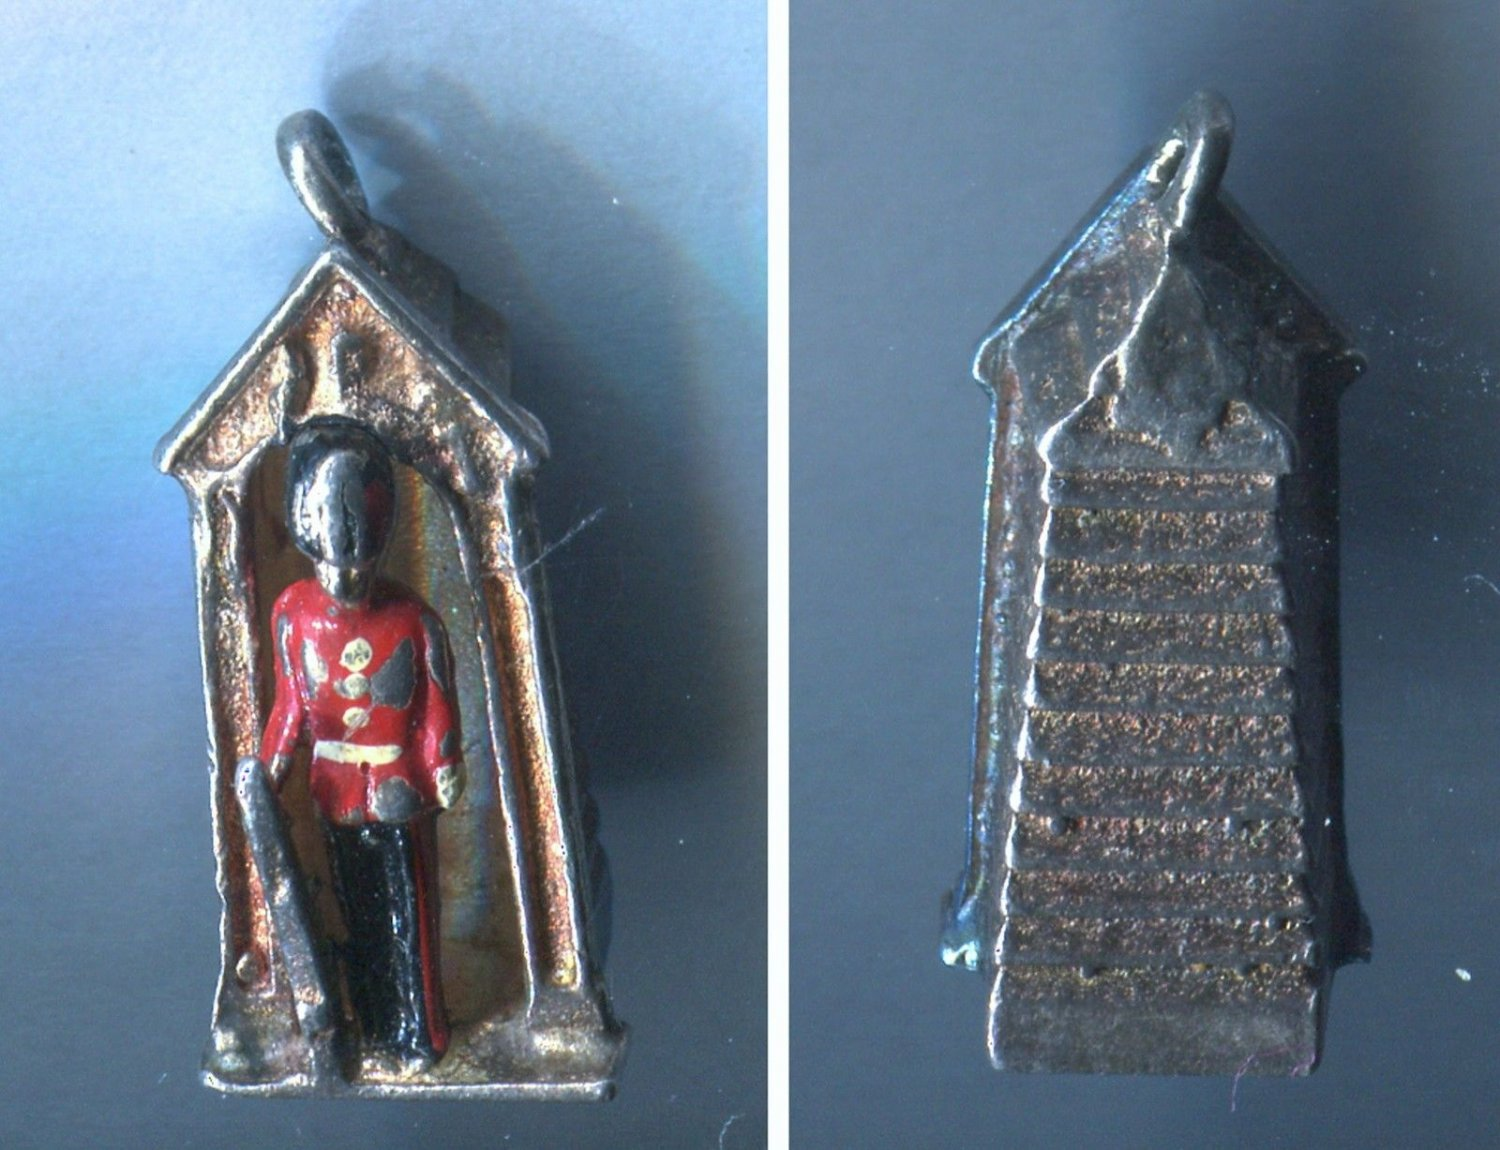 Vintage Charm : Queen's Guard Buckingham Palace Sentry